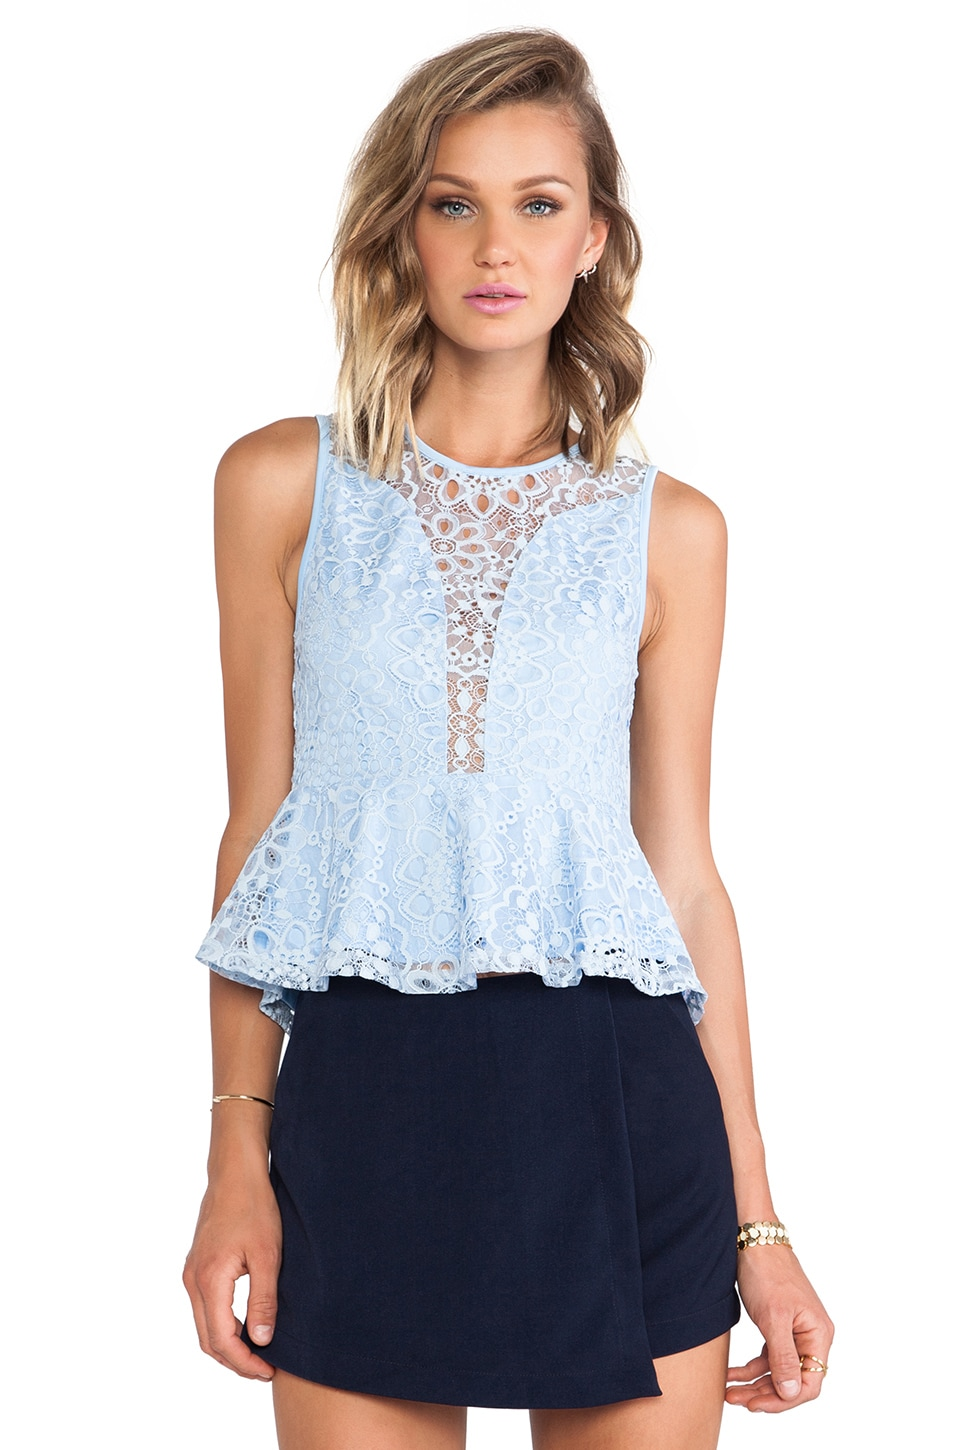 For Love & Lemons Lulu Top in Periwinkle